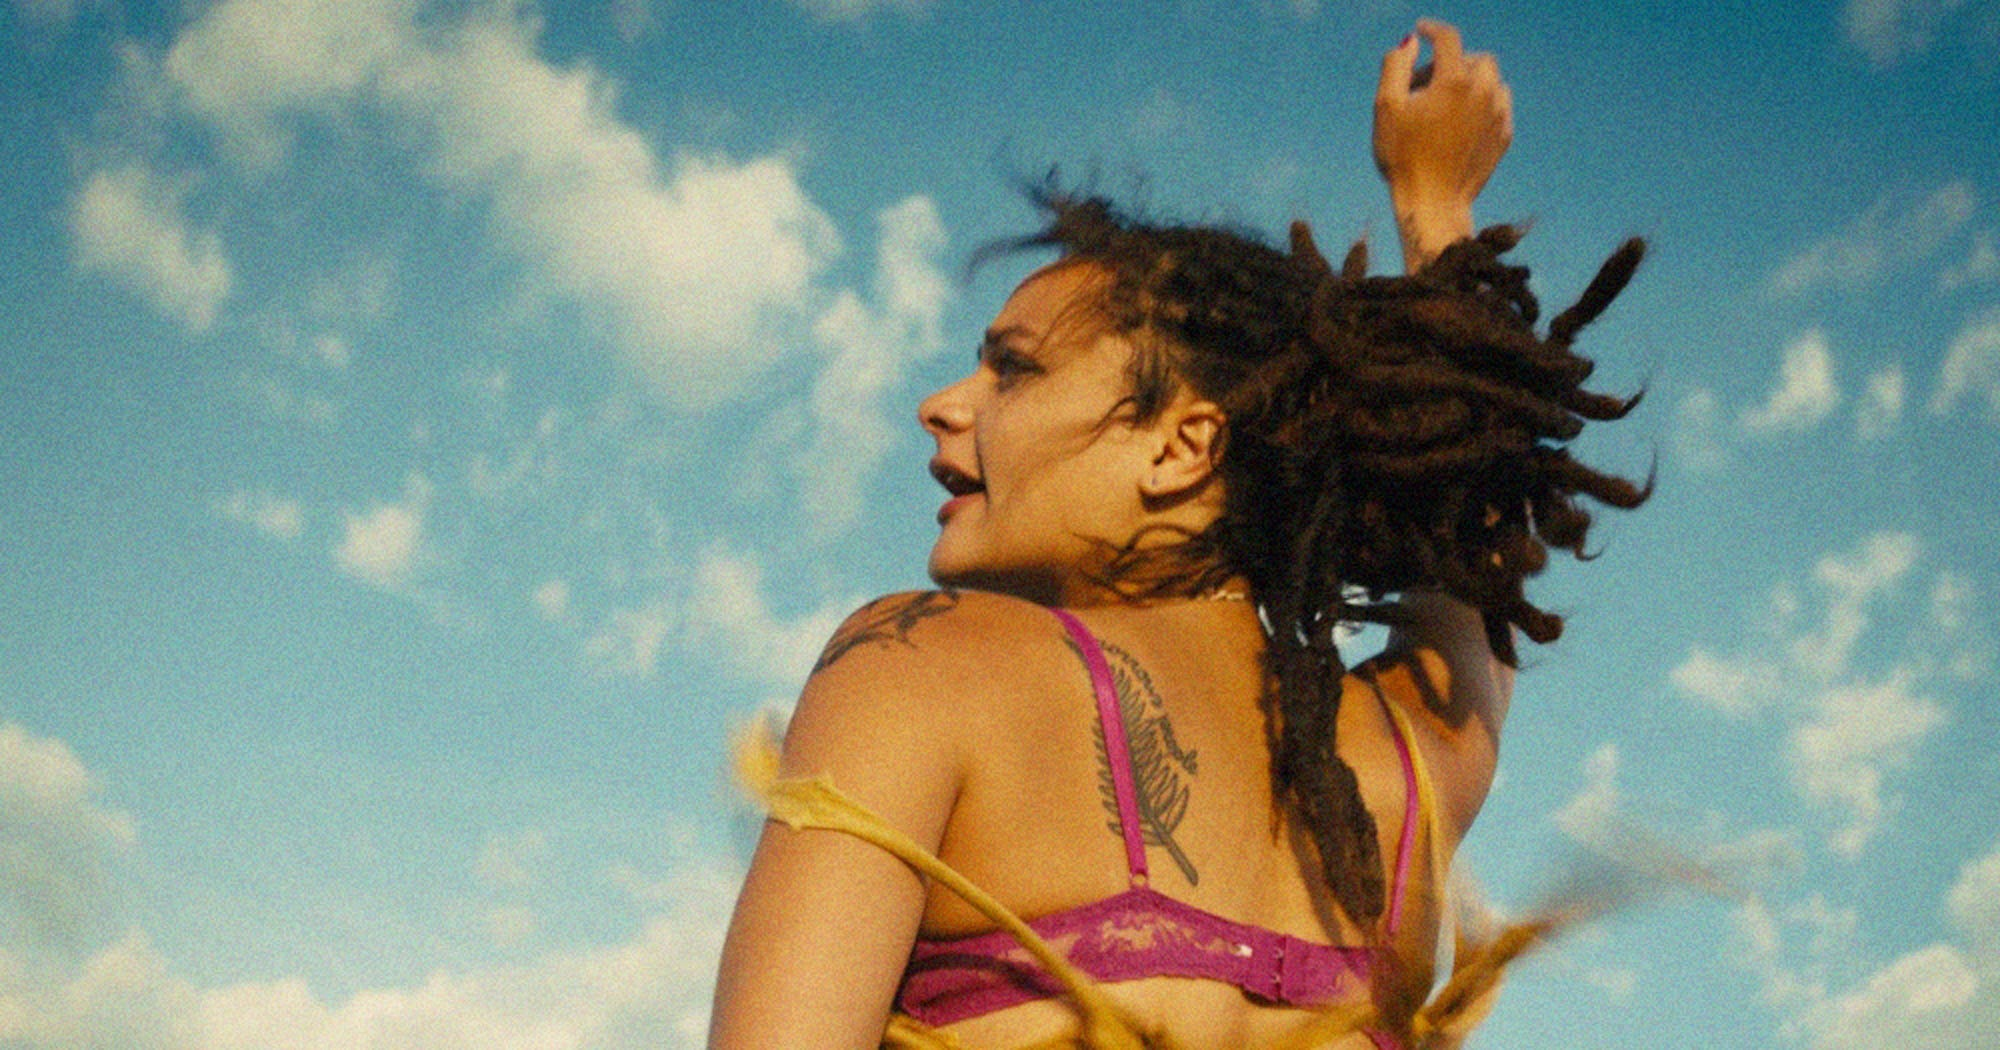 American Honey Soundtrack Best Songs From The Movie